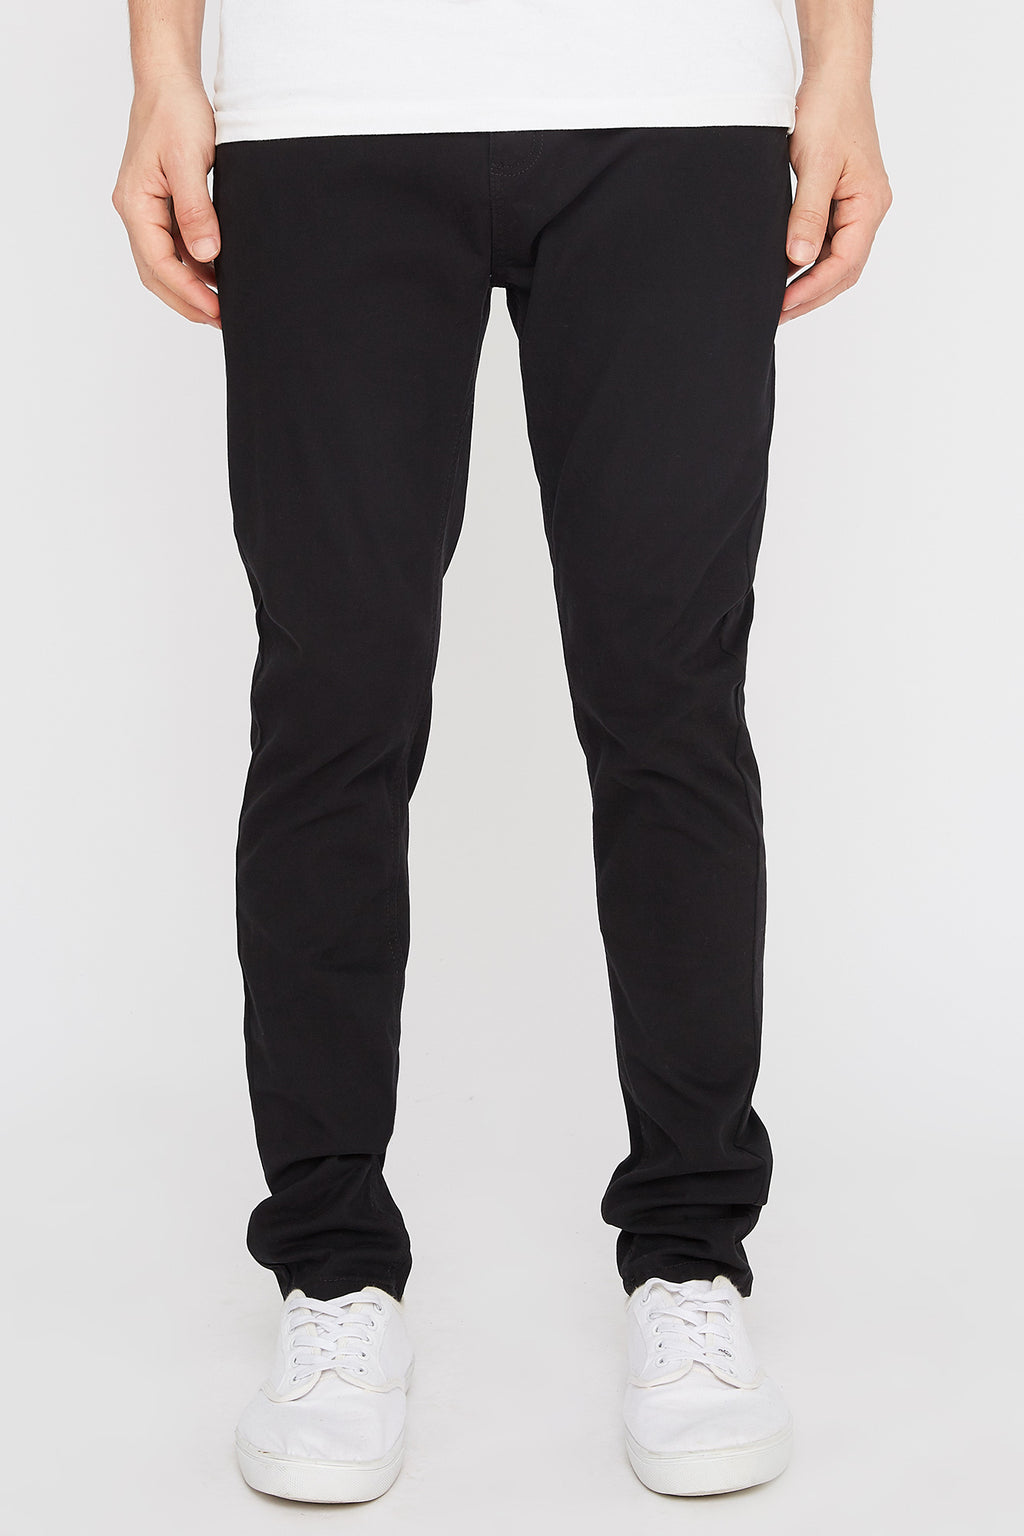 West49 Mens Basic Twill Chino